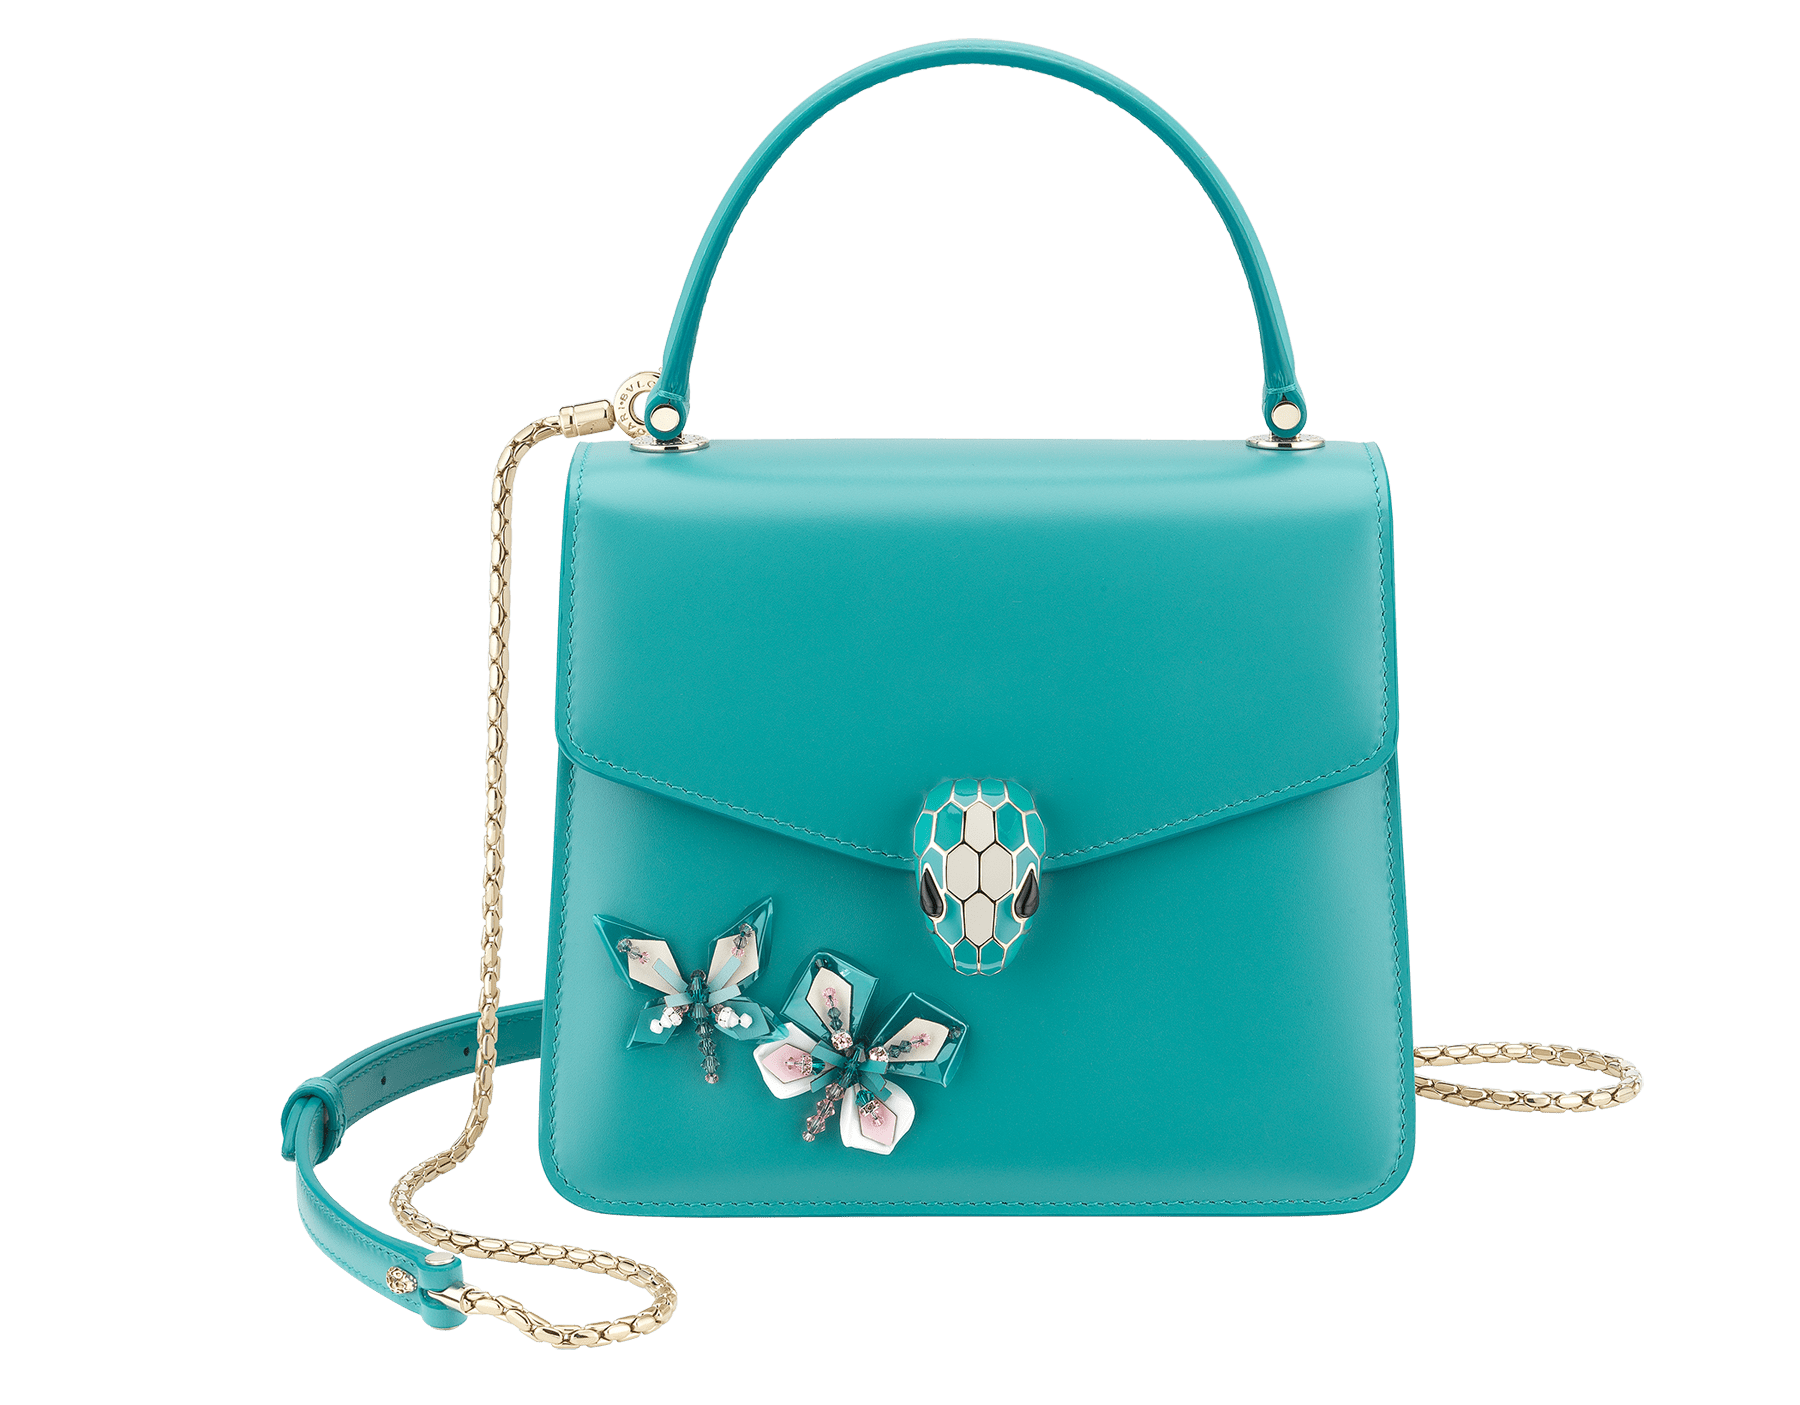 """""""Serpenti Forever """" crossbody bag in arctic jade calf leather with two arctic jade butterflies embroidered. Iconic snakehead closure in light gold plated brass enriched with arctic jade and white agate enamel and black onyx eyes. 289249 image 1"""